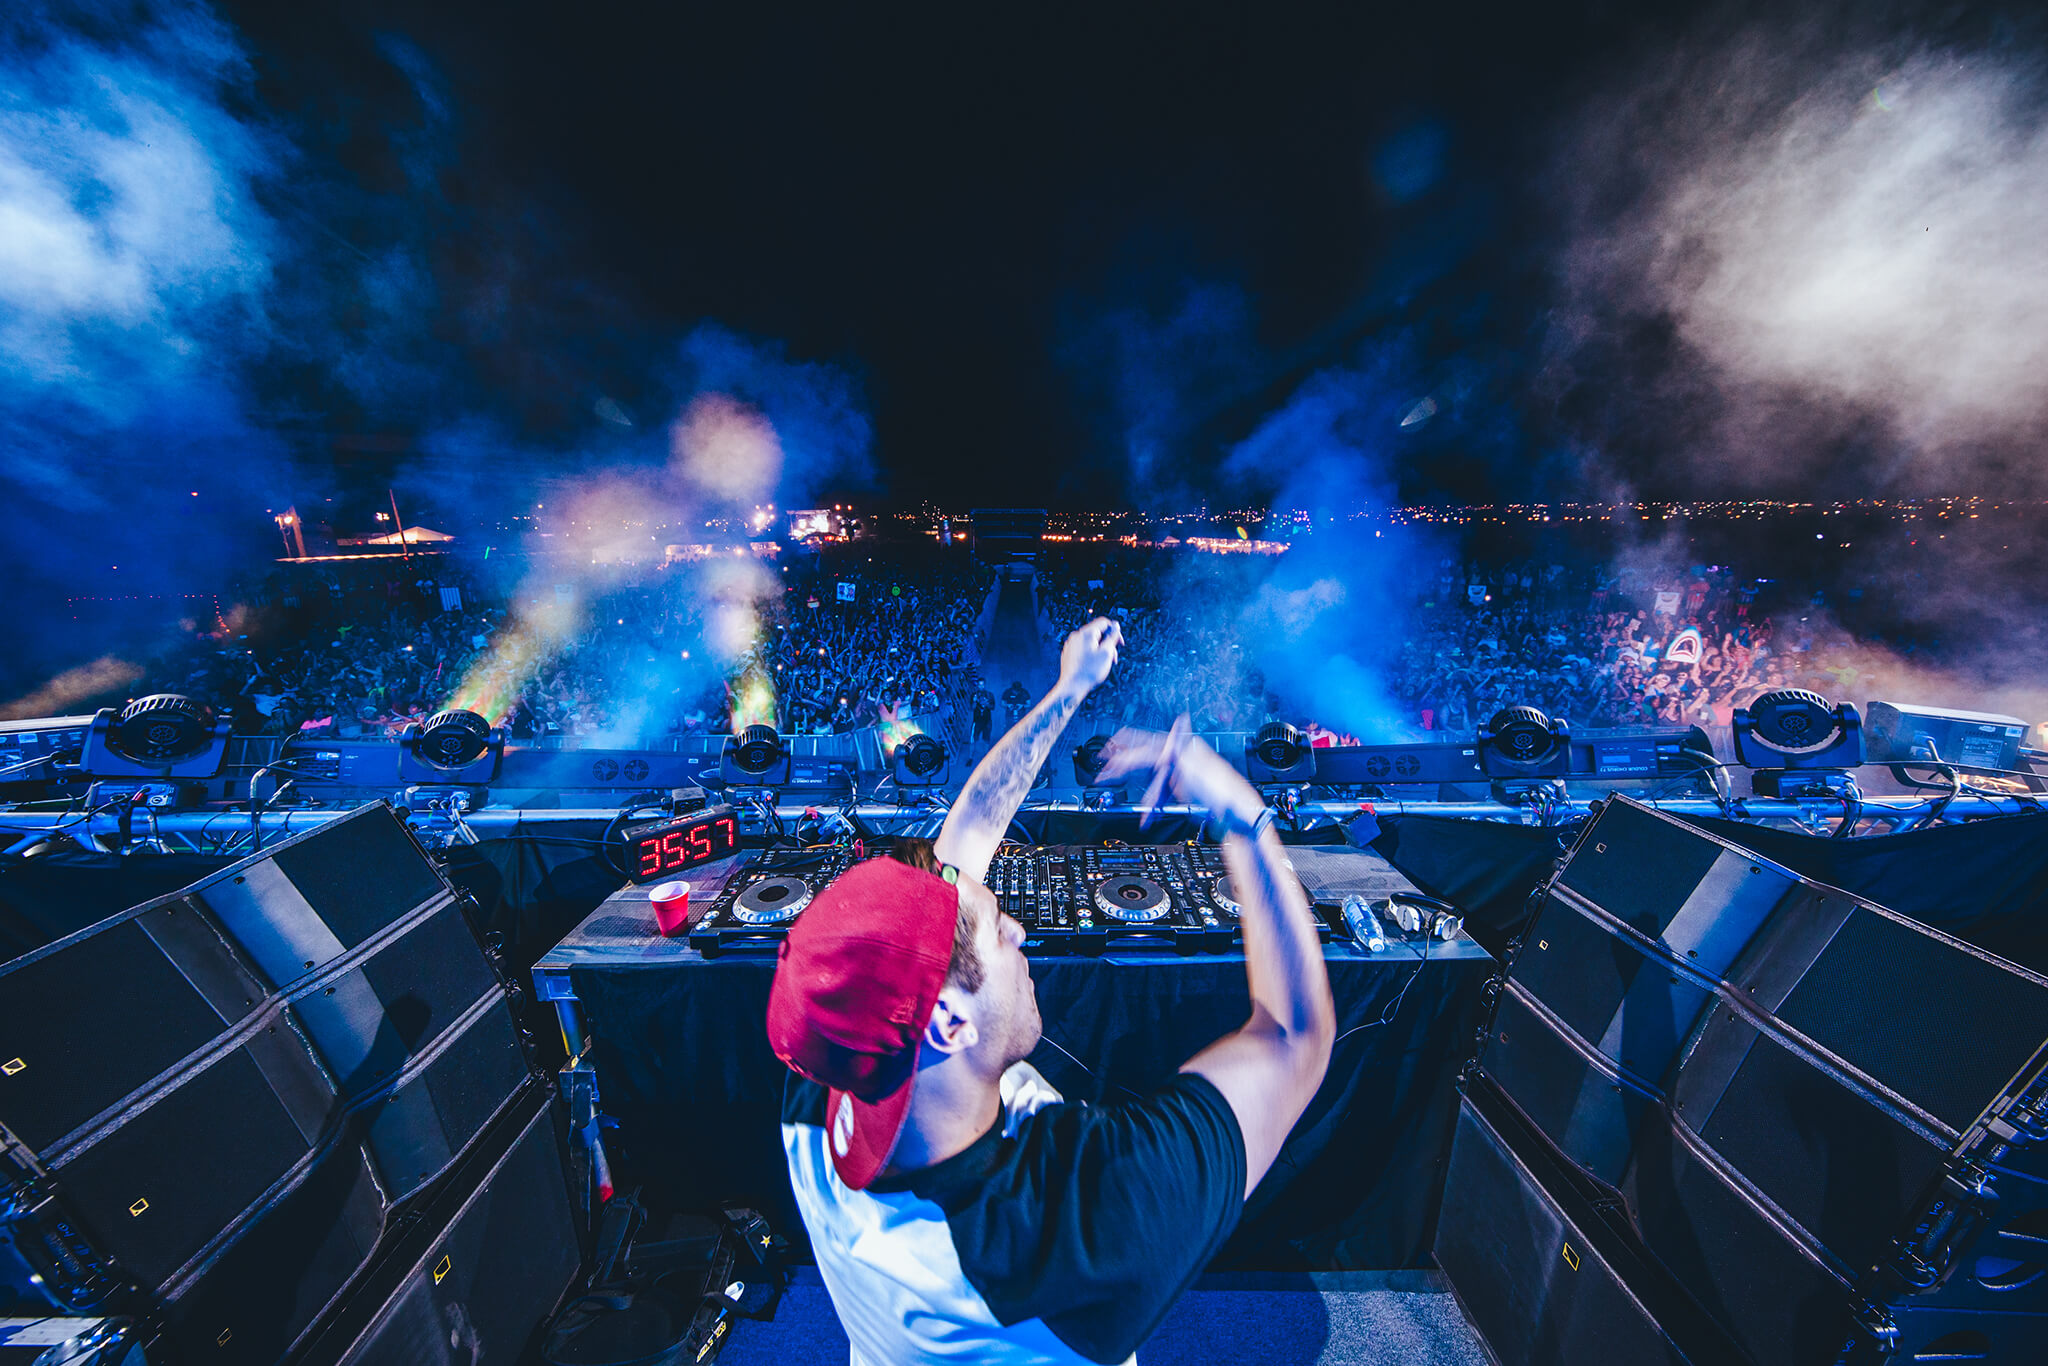 jauz performing at sun city music festival